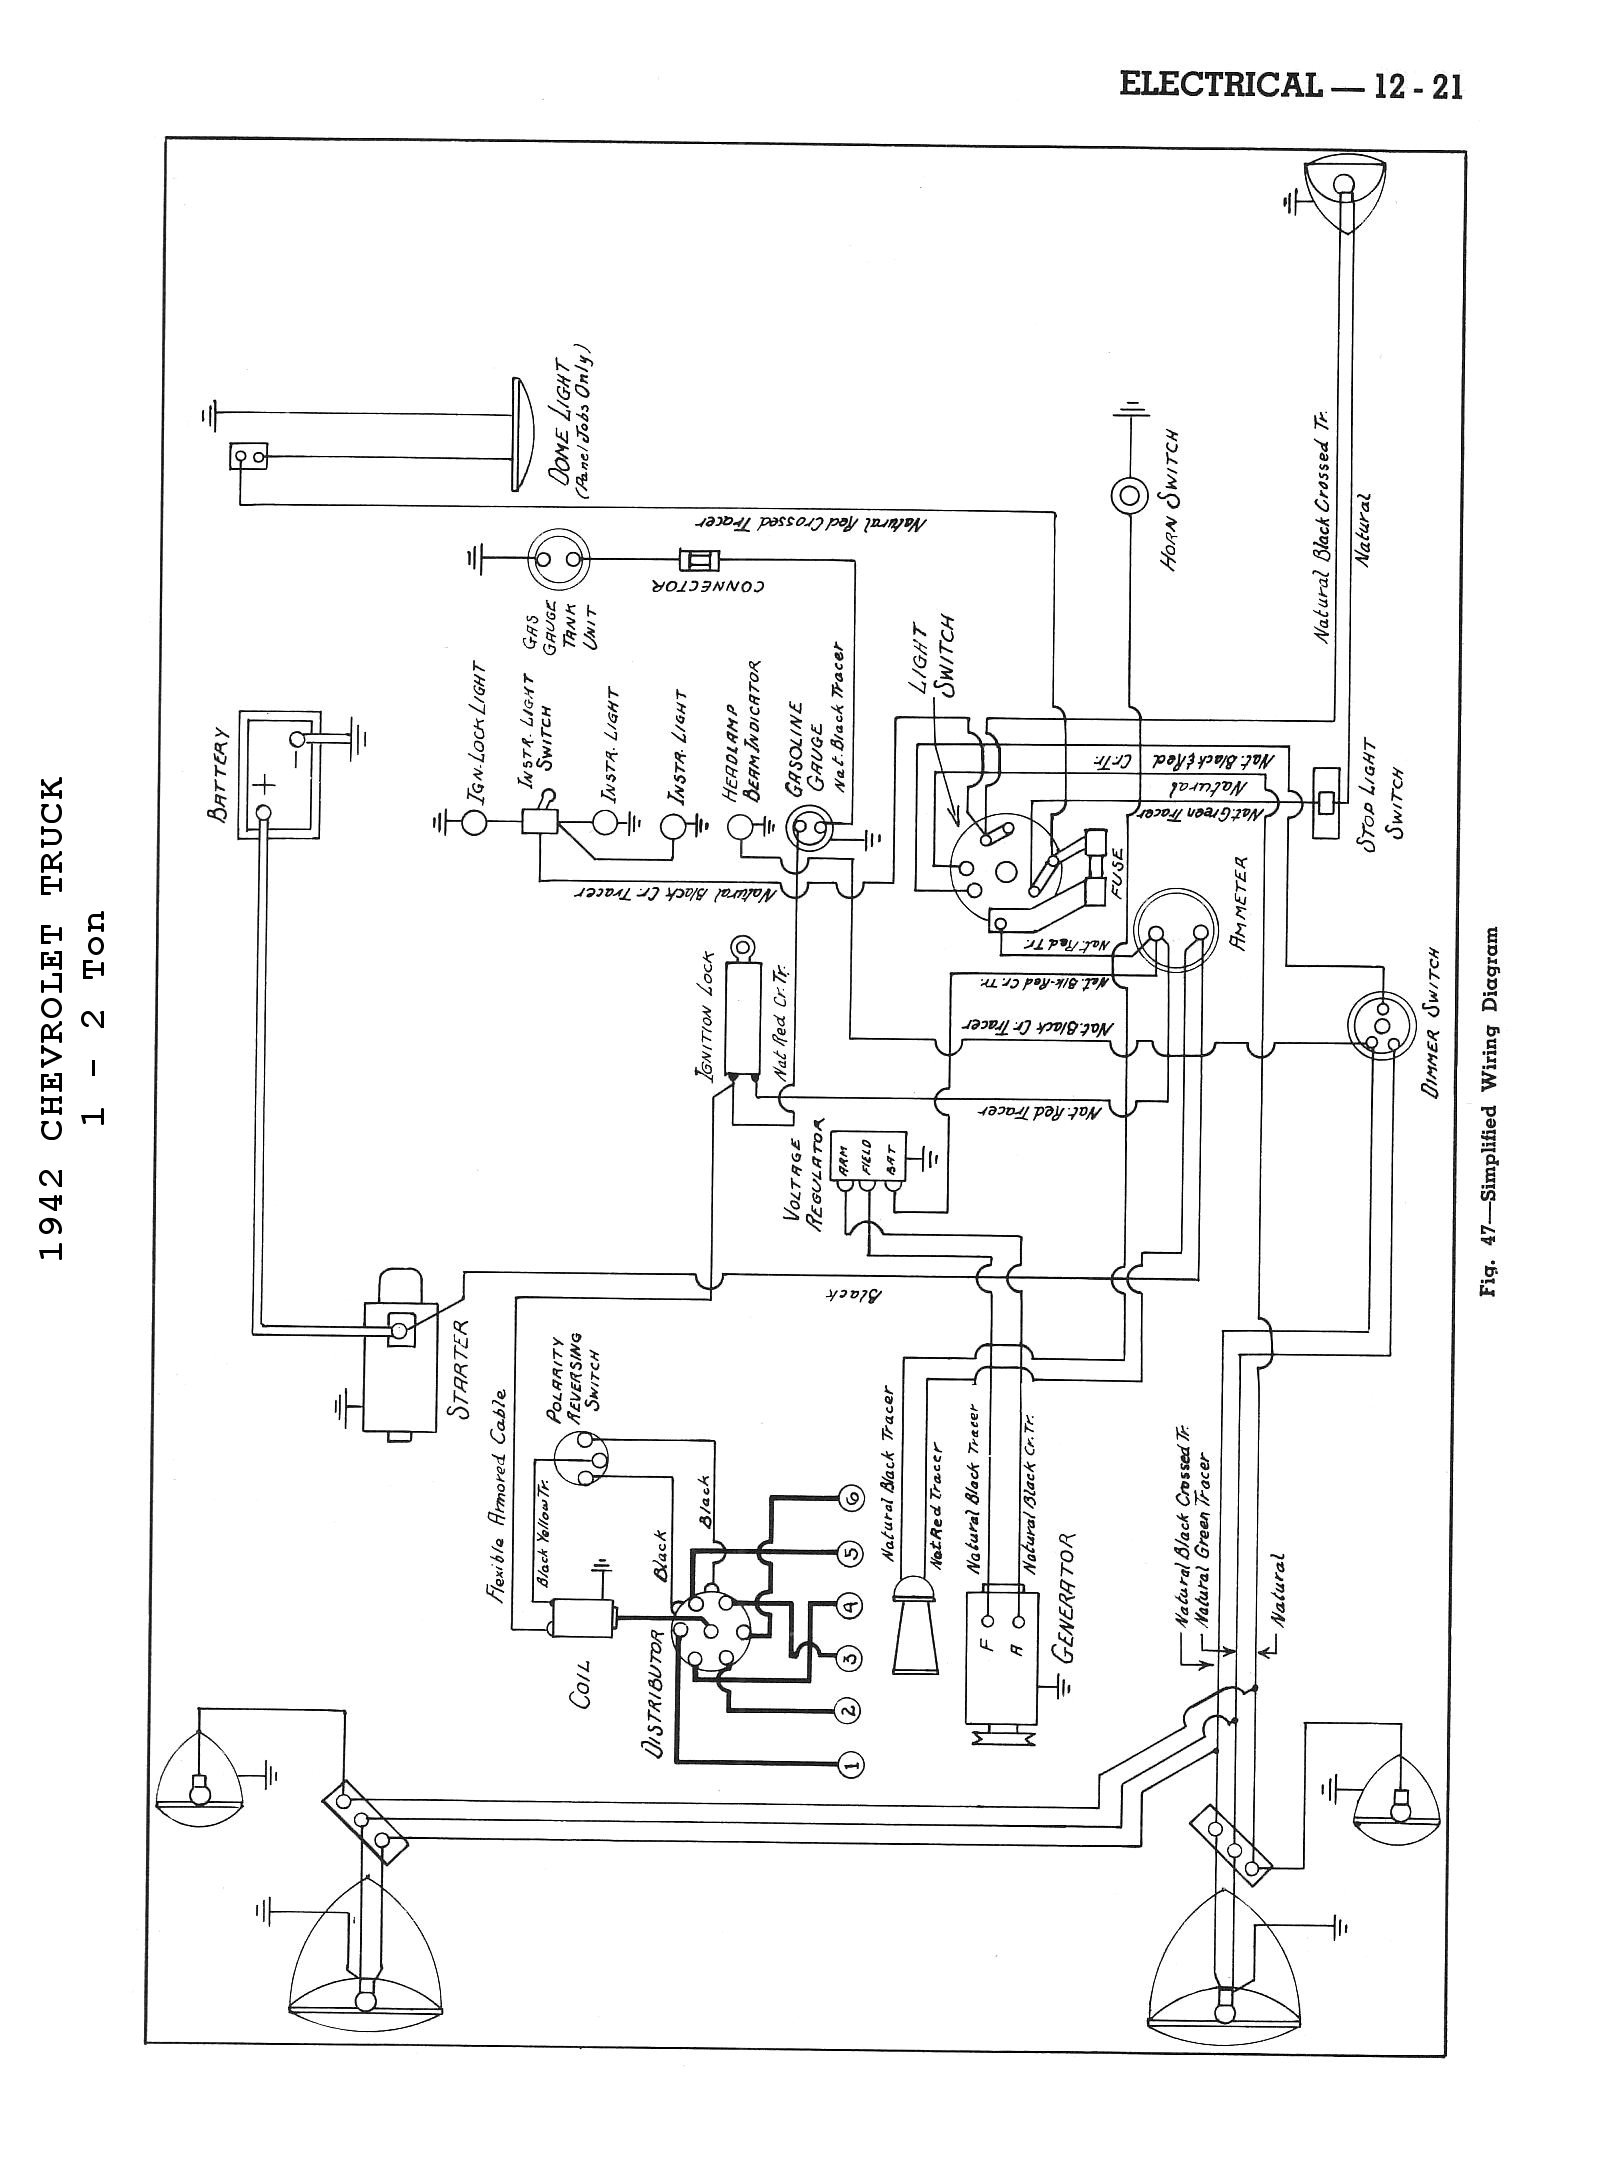 42cm4x2t1221 cm wiring diagram cm hoist wiring diagram \u2022 wiring diagrams j cm flatbed wiring diagram at n-0.co